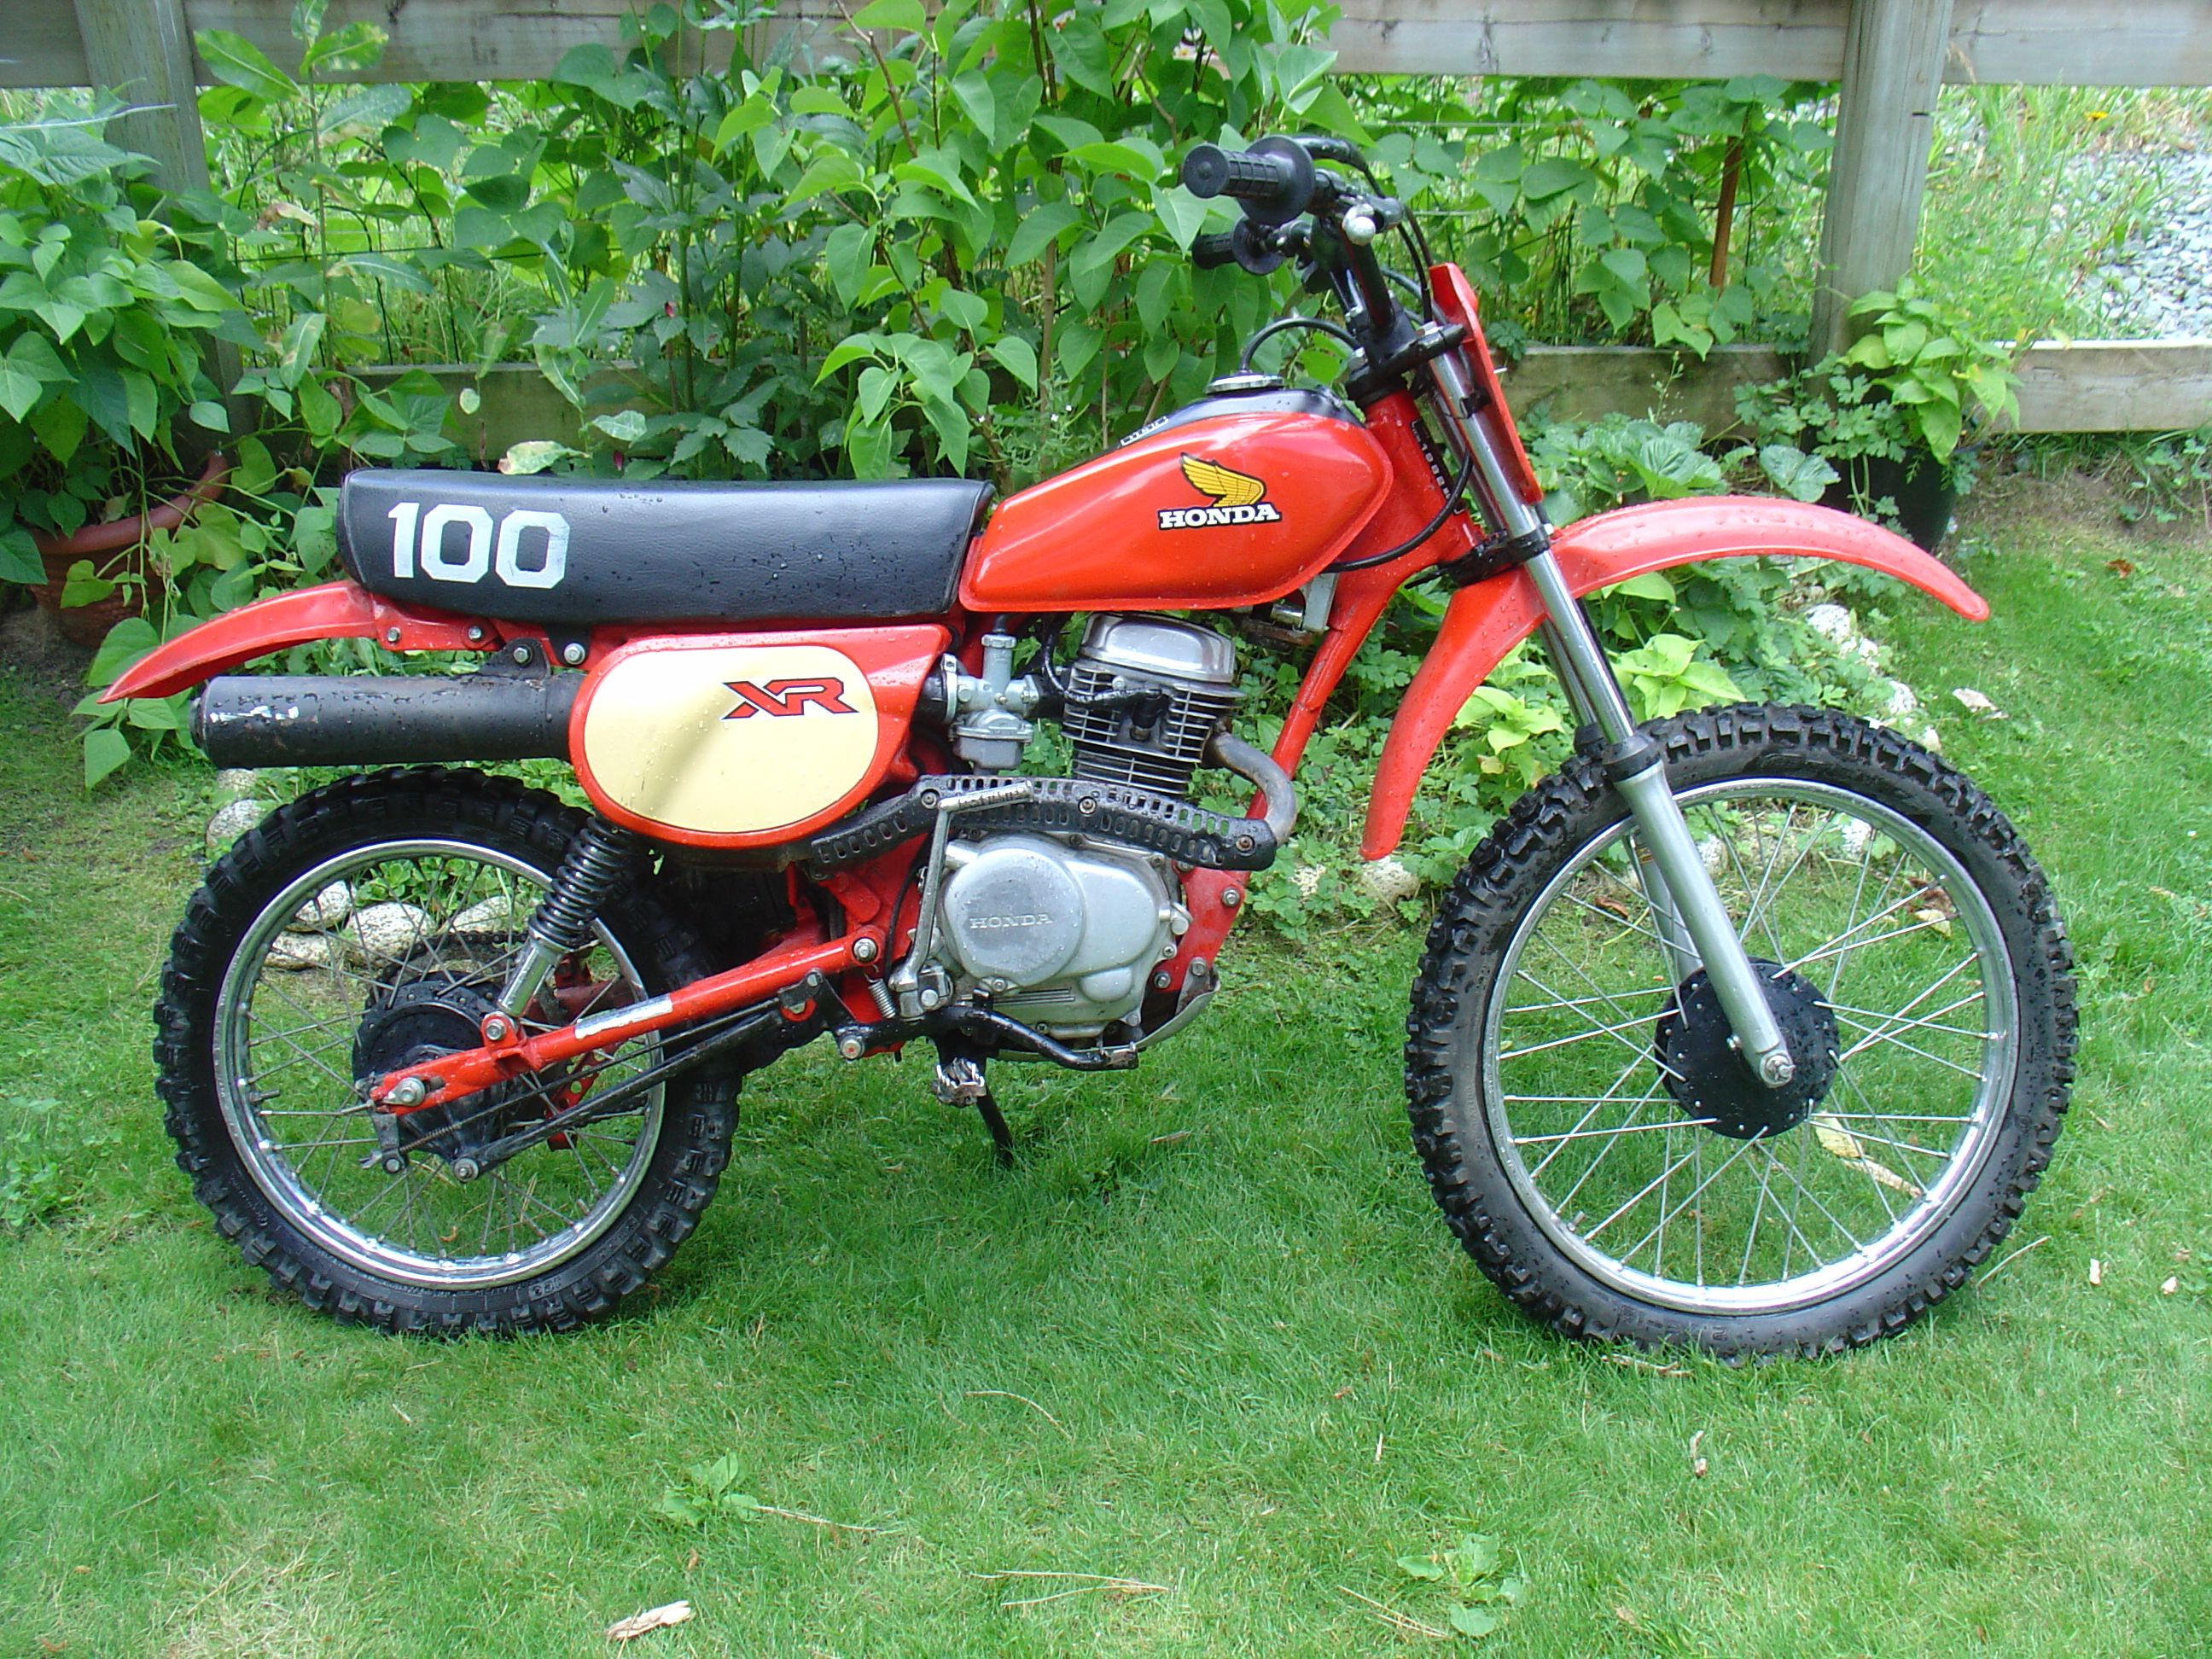 bf56ed93572d924be23b8174c19d1d4e Take A Look About Honda Cr 100